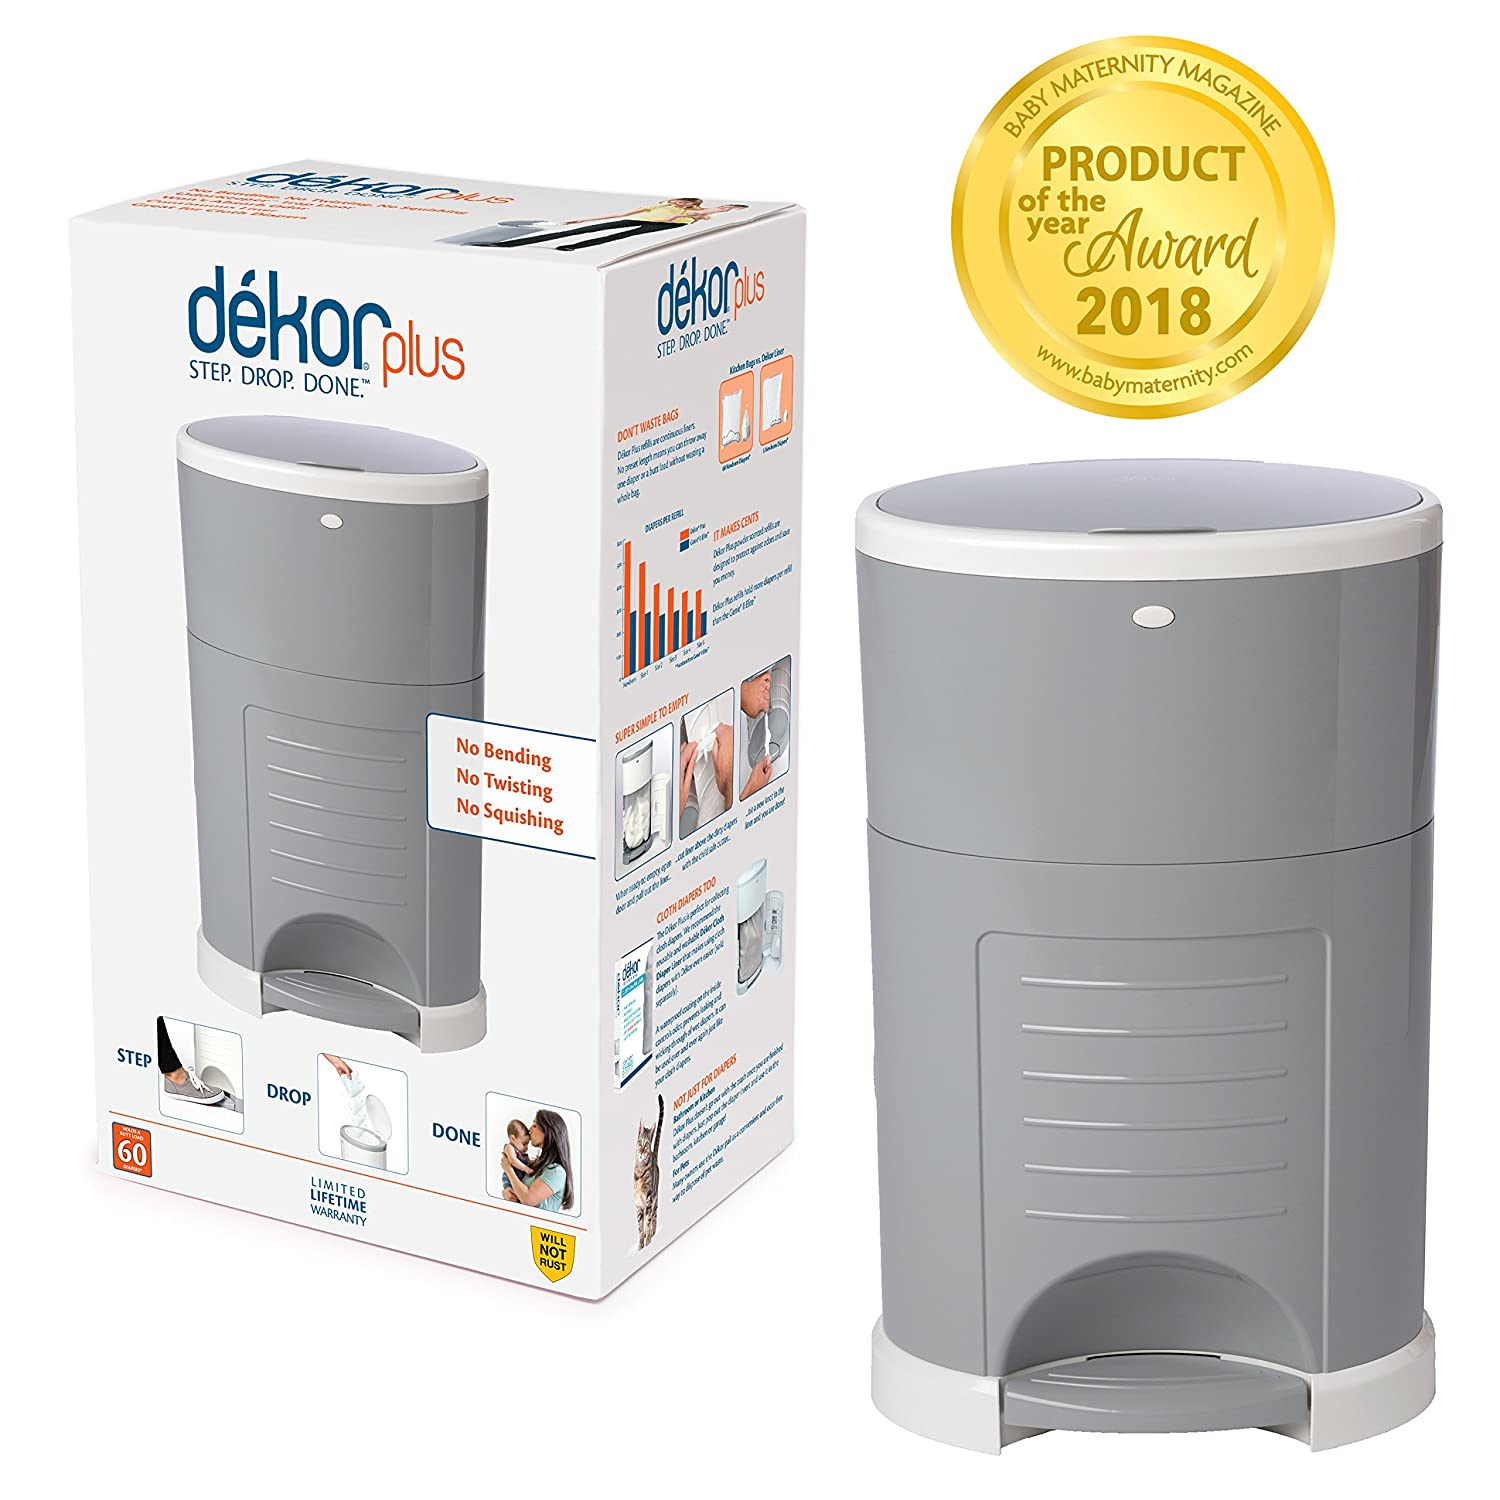 Best Diaper Pail for Cloth Diapers – Reviews & Buying Guide 2020 1